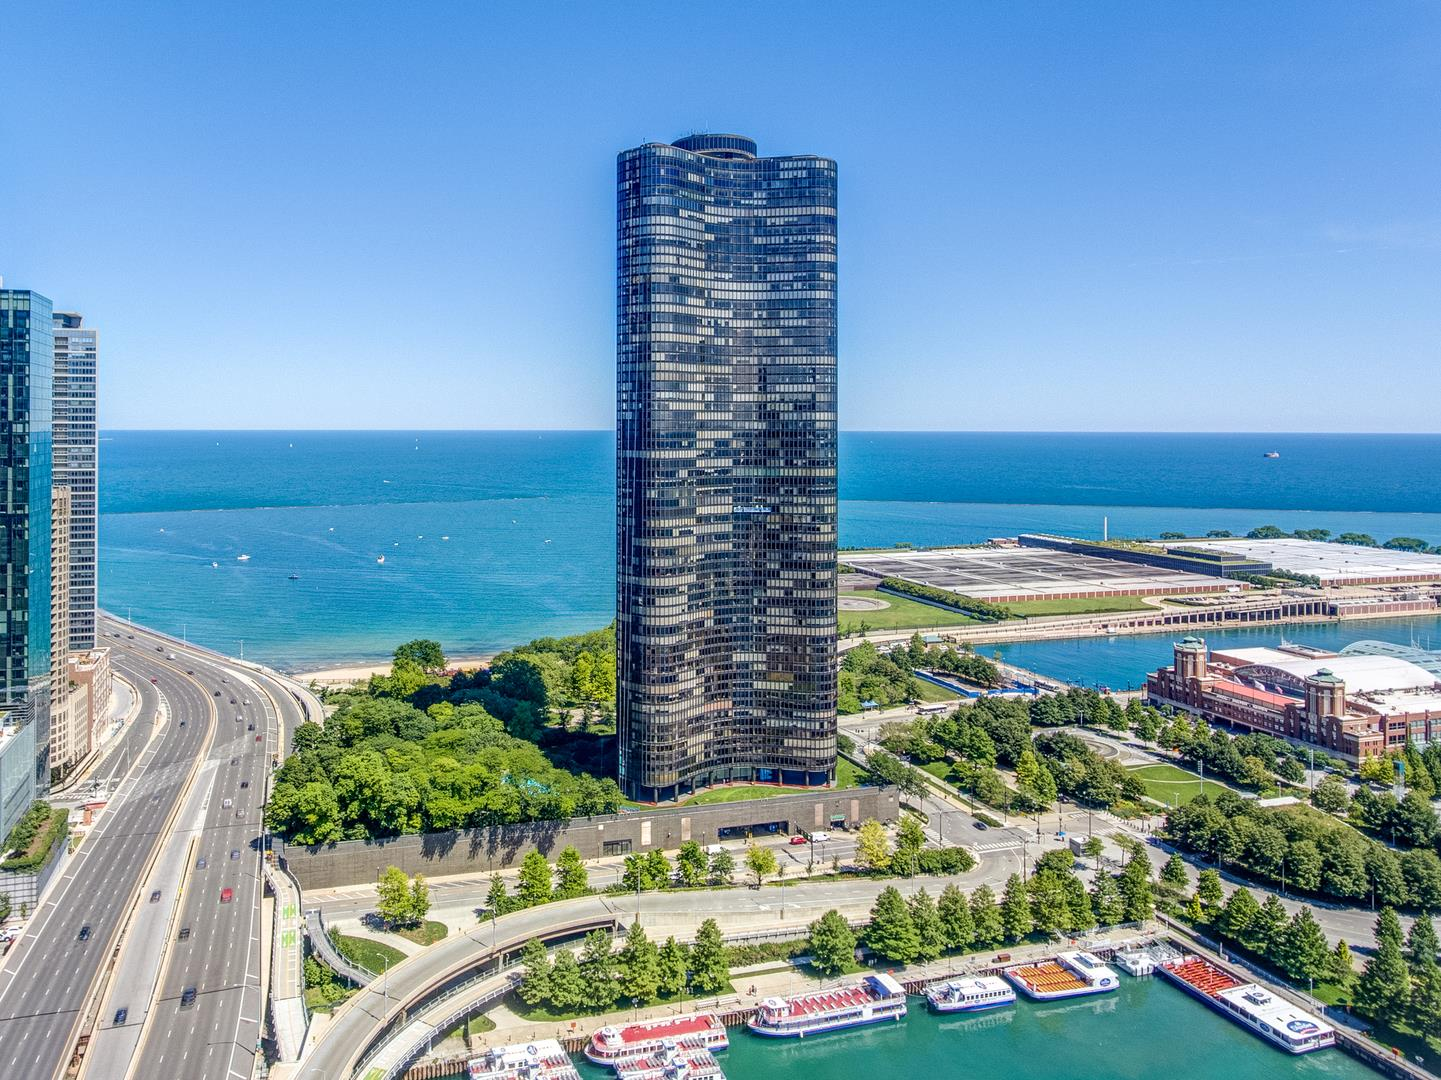 505 N Lake Shore Drive #2610, Chicago, IL 60611 - #: 10825917